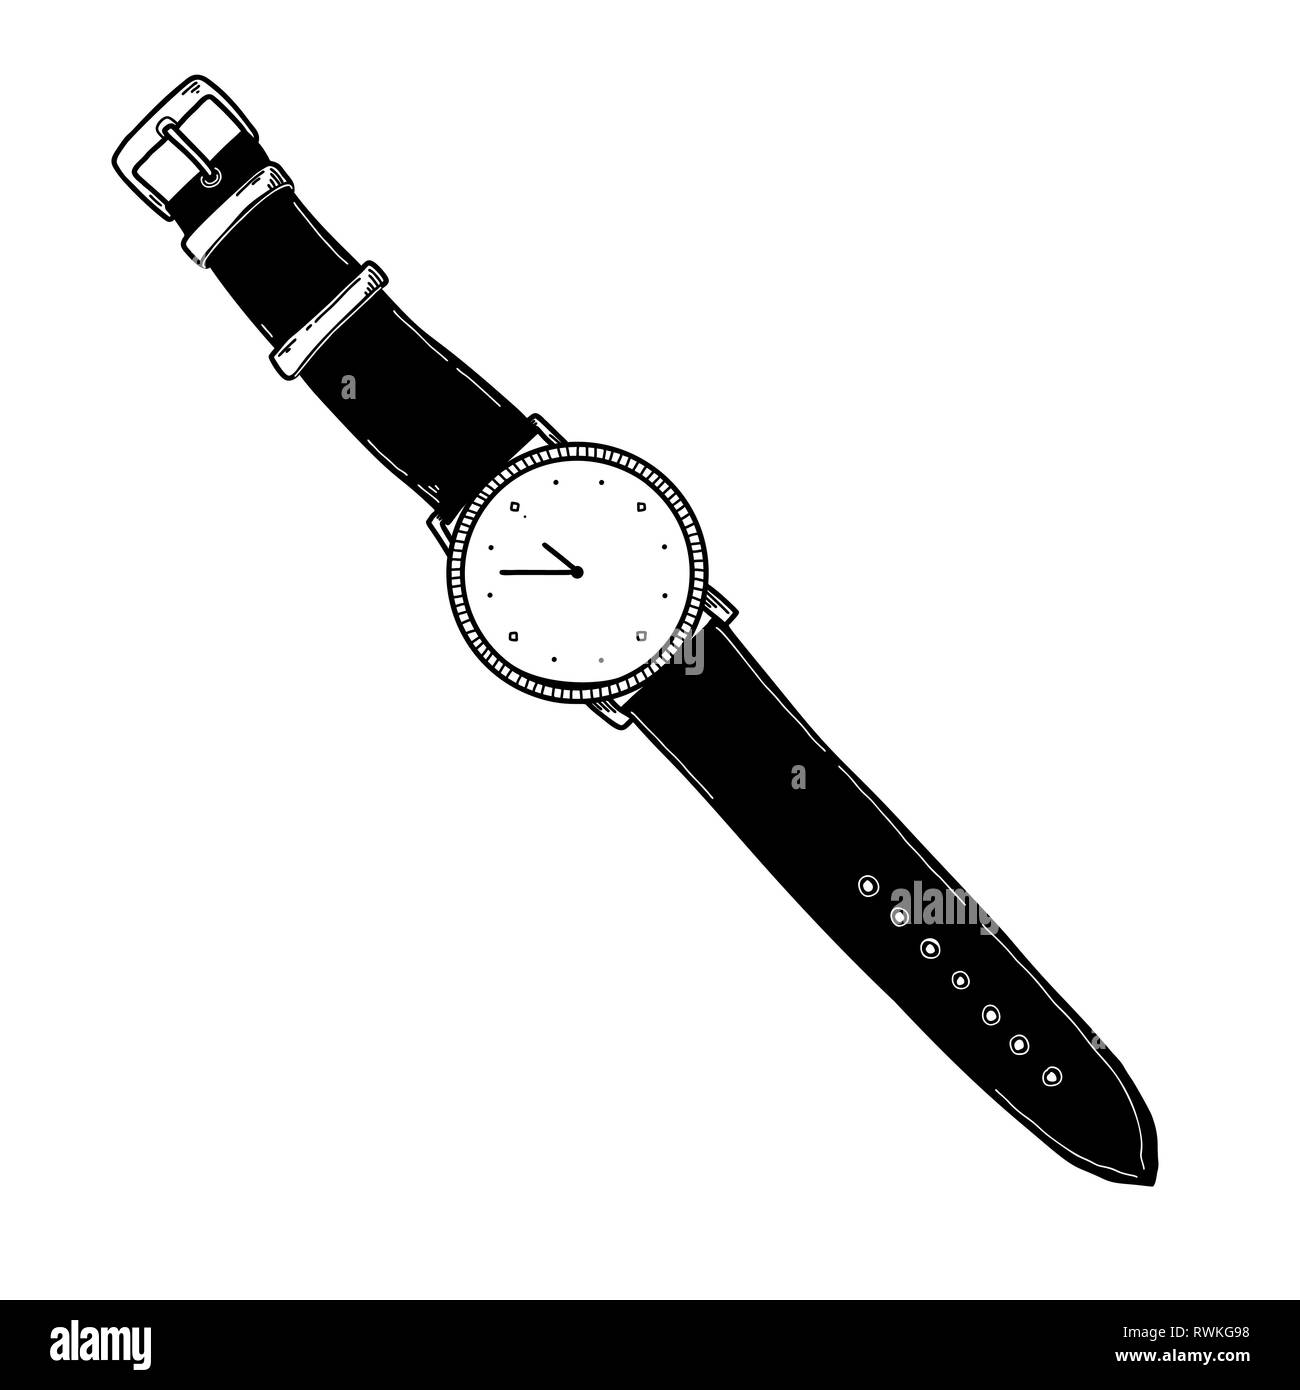 Realistic sketch of a watch. Wristwatches on the strap. Vector - Stock Image